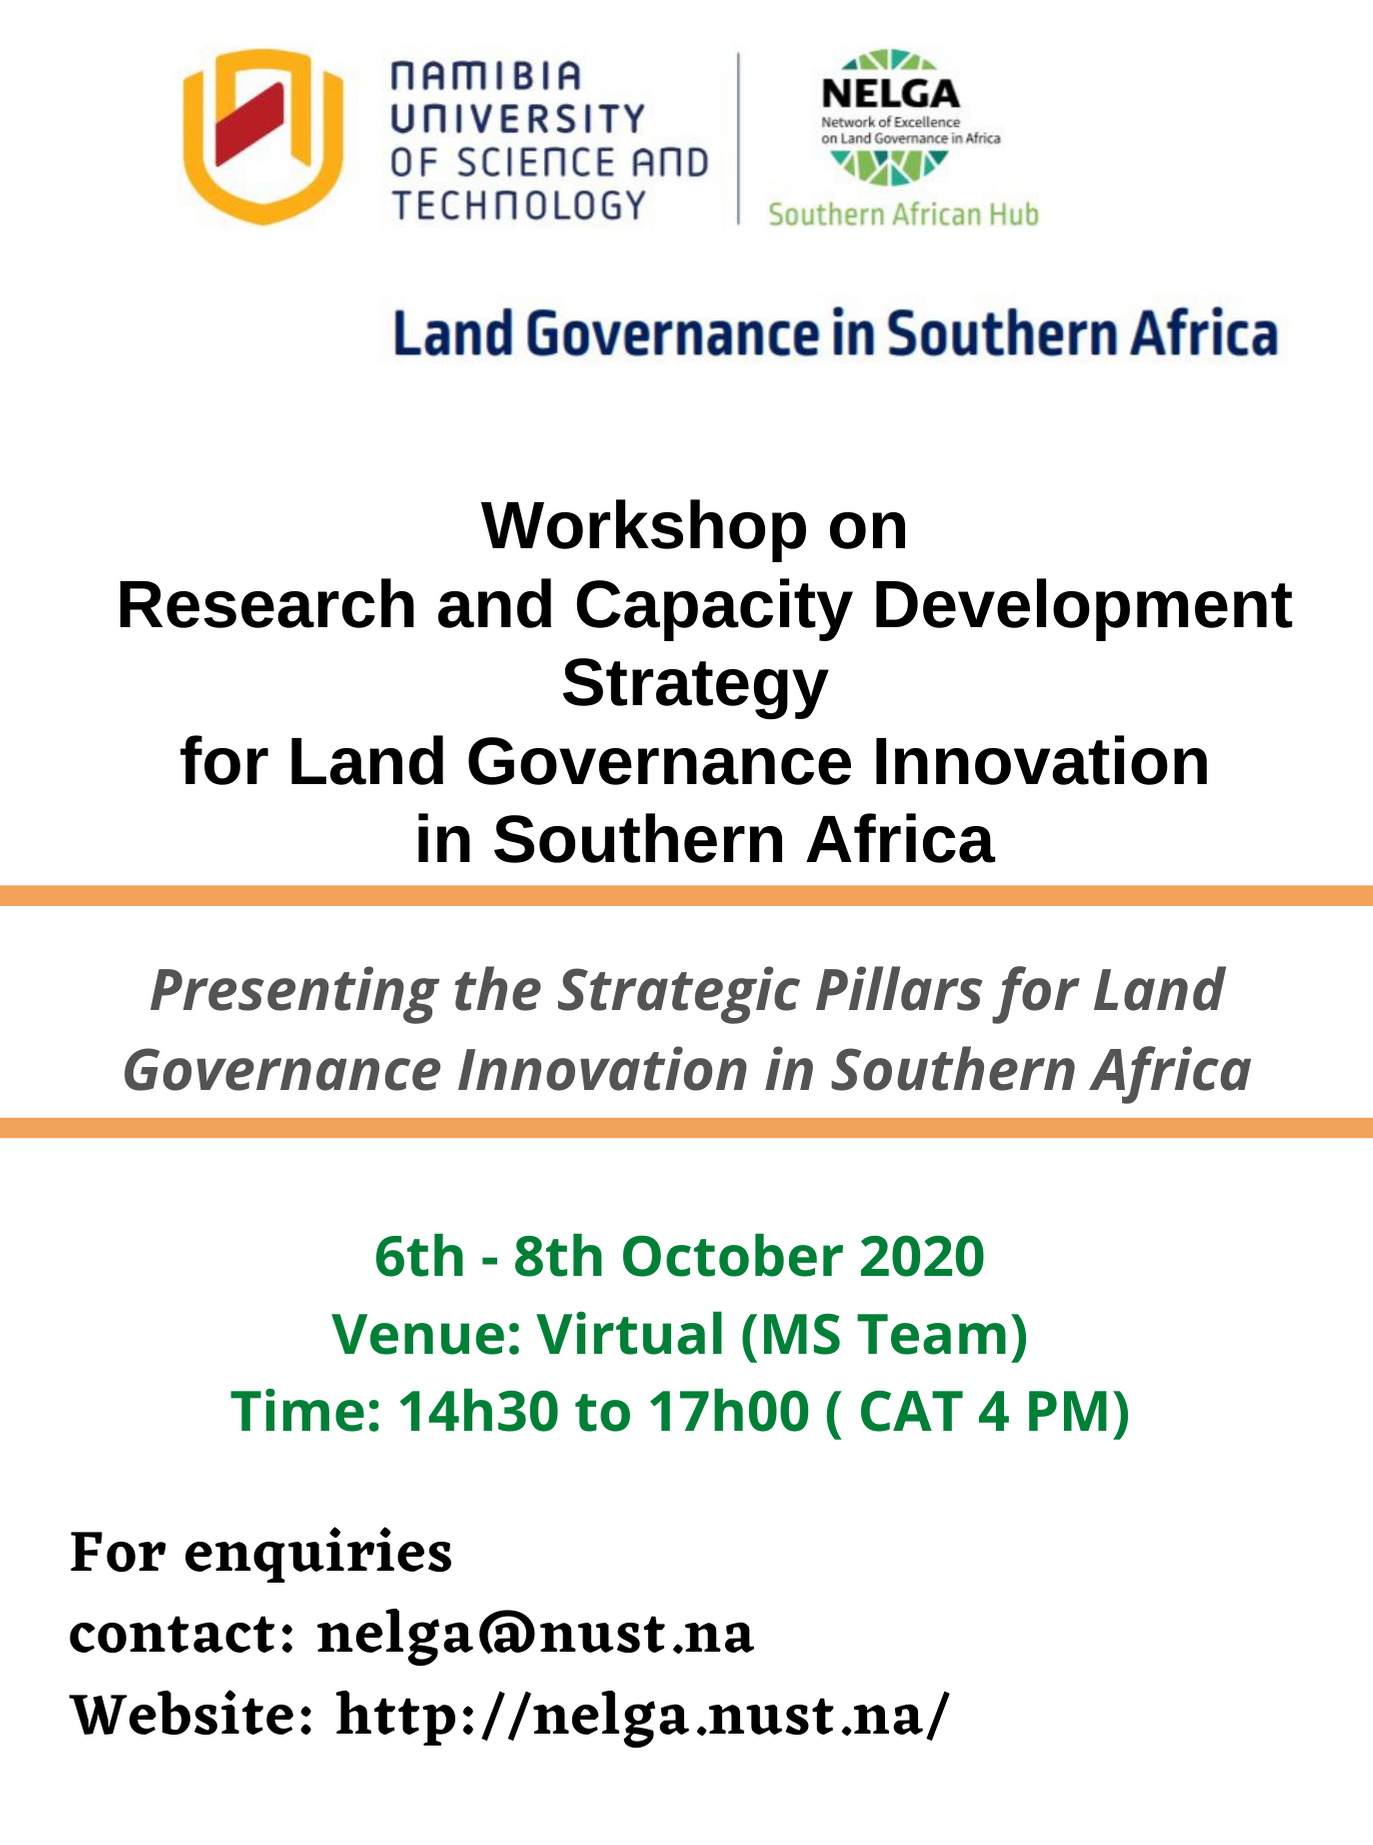 NELGA Southern Africa Hub to hold Research and Capacity Development Workshop on Land Governance Innovation in Southern Africa